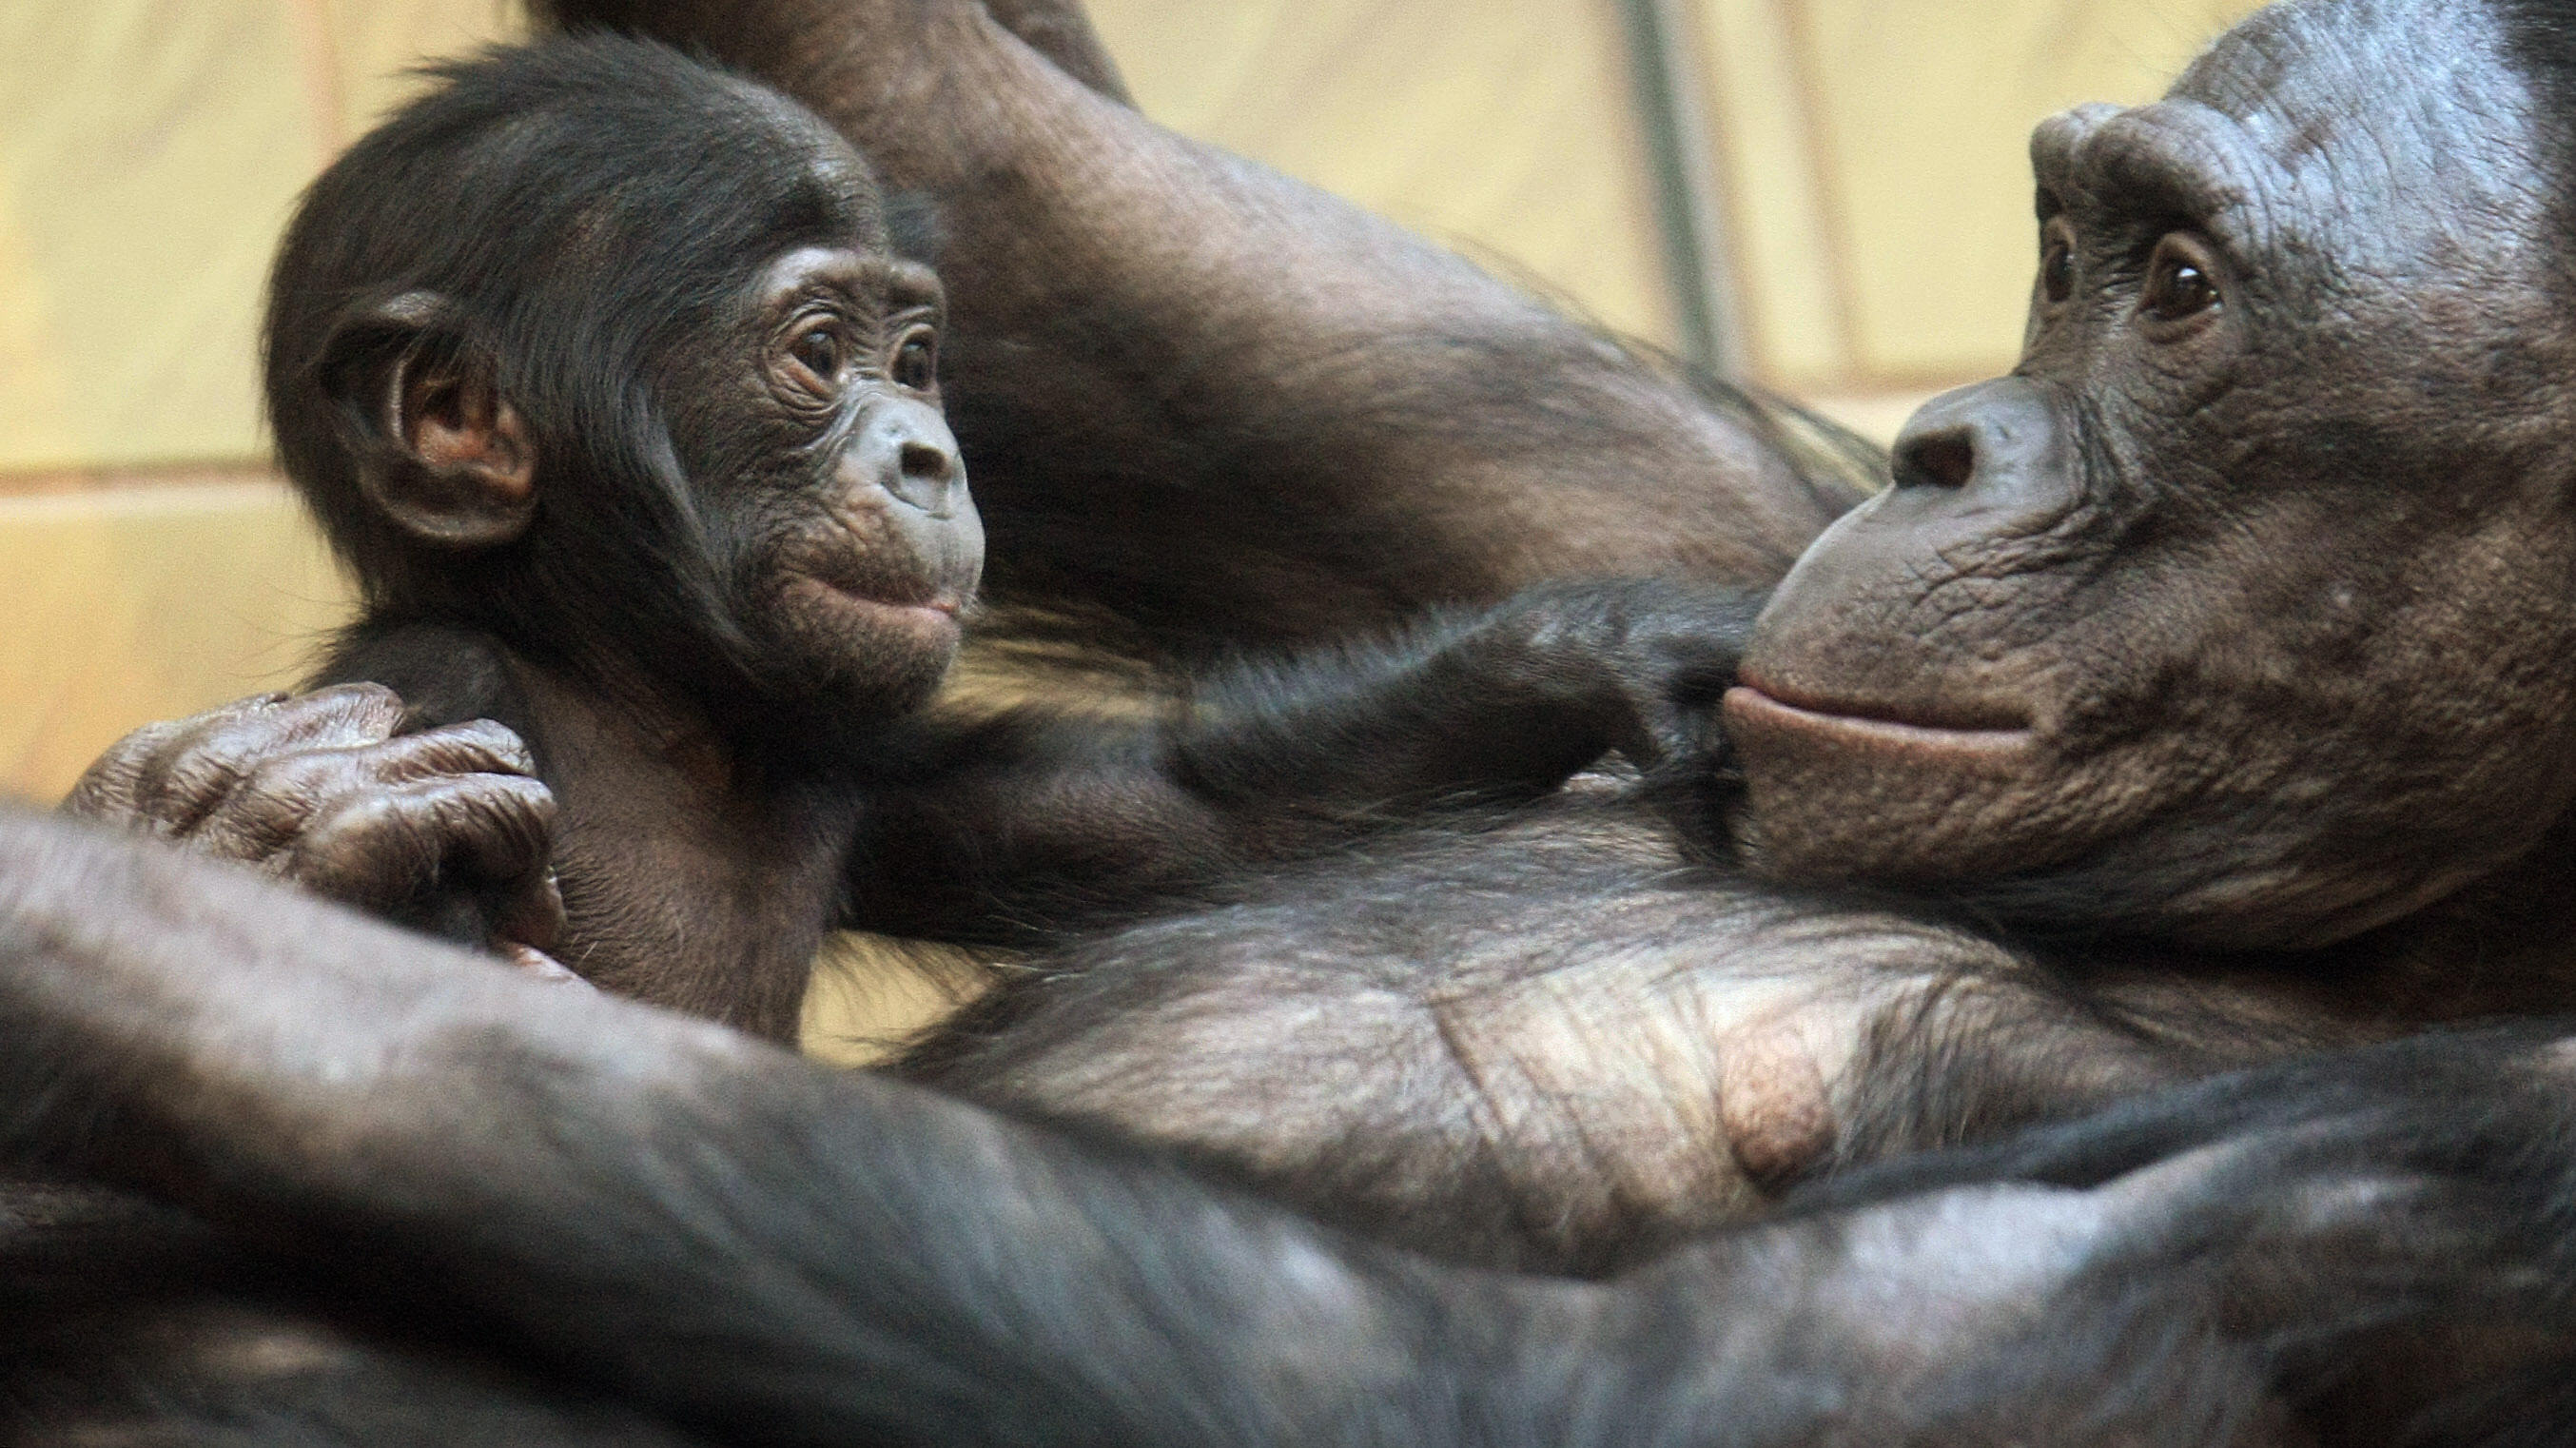 baby bonobo plays with its mother